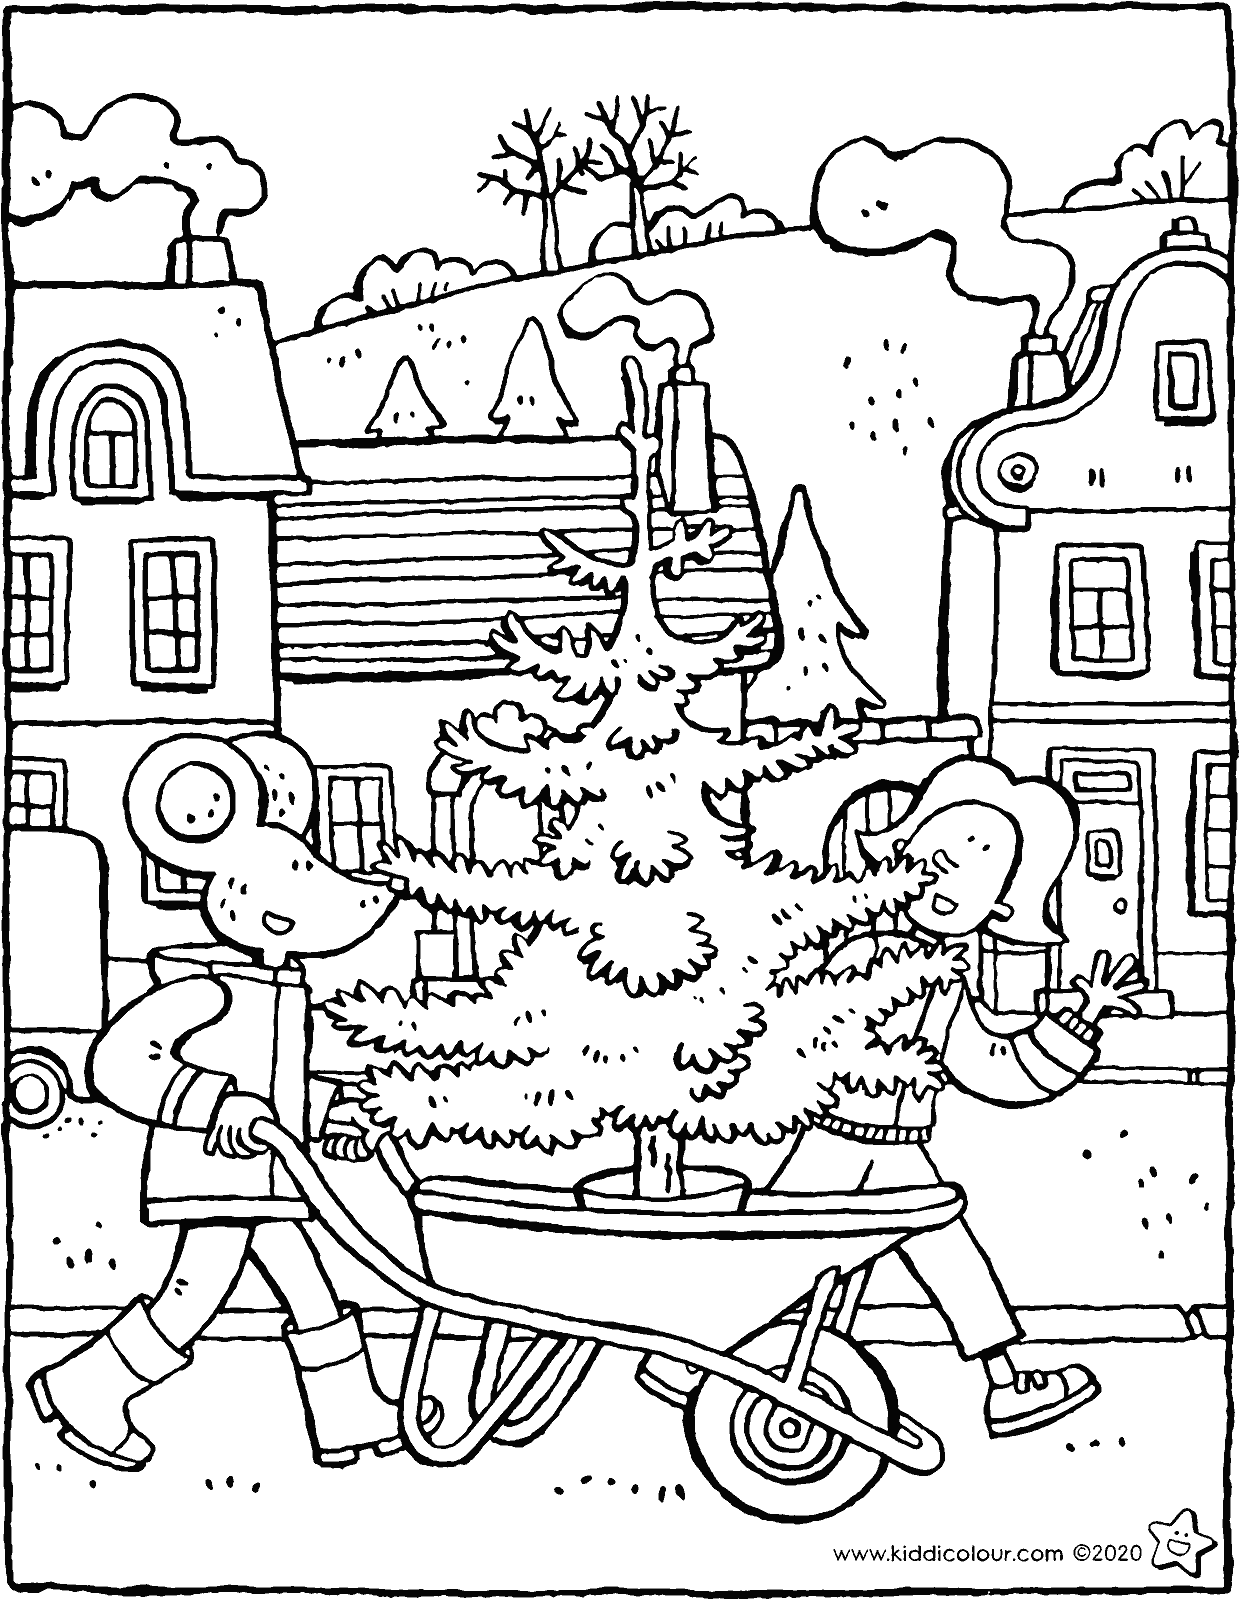 Emma and Thomas fetch a Christmas tree colouring page drawing picture 01V